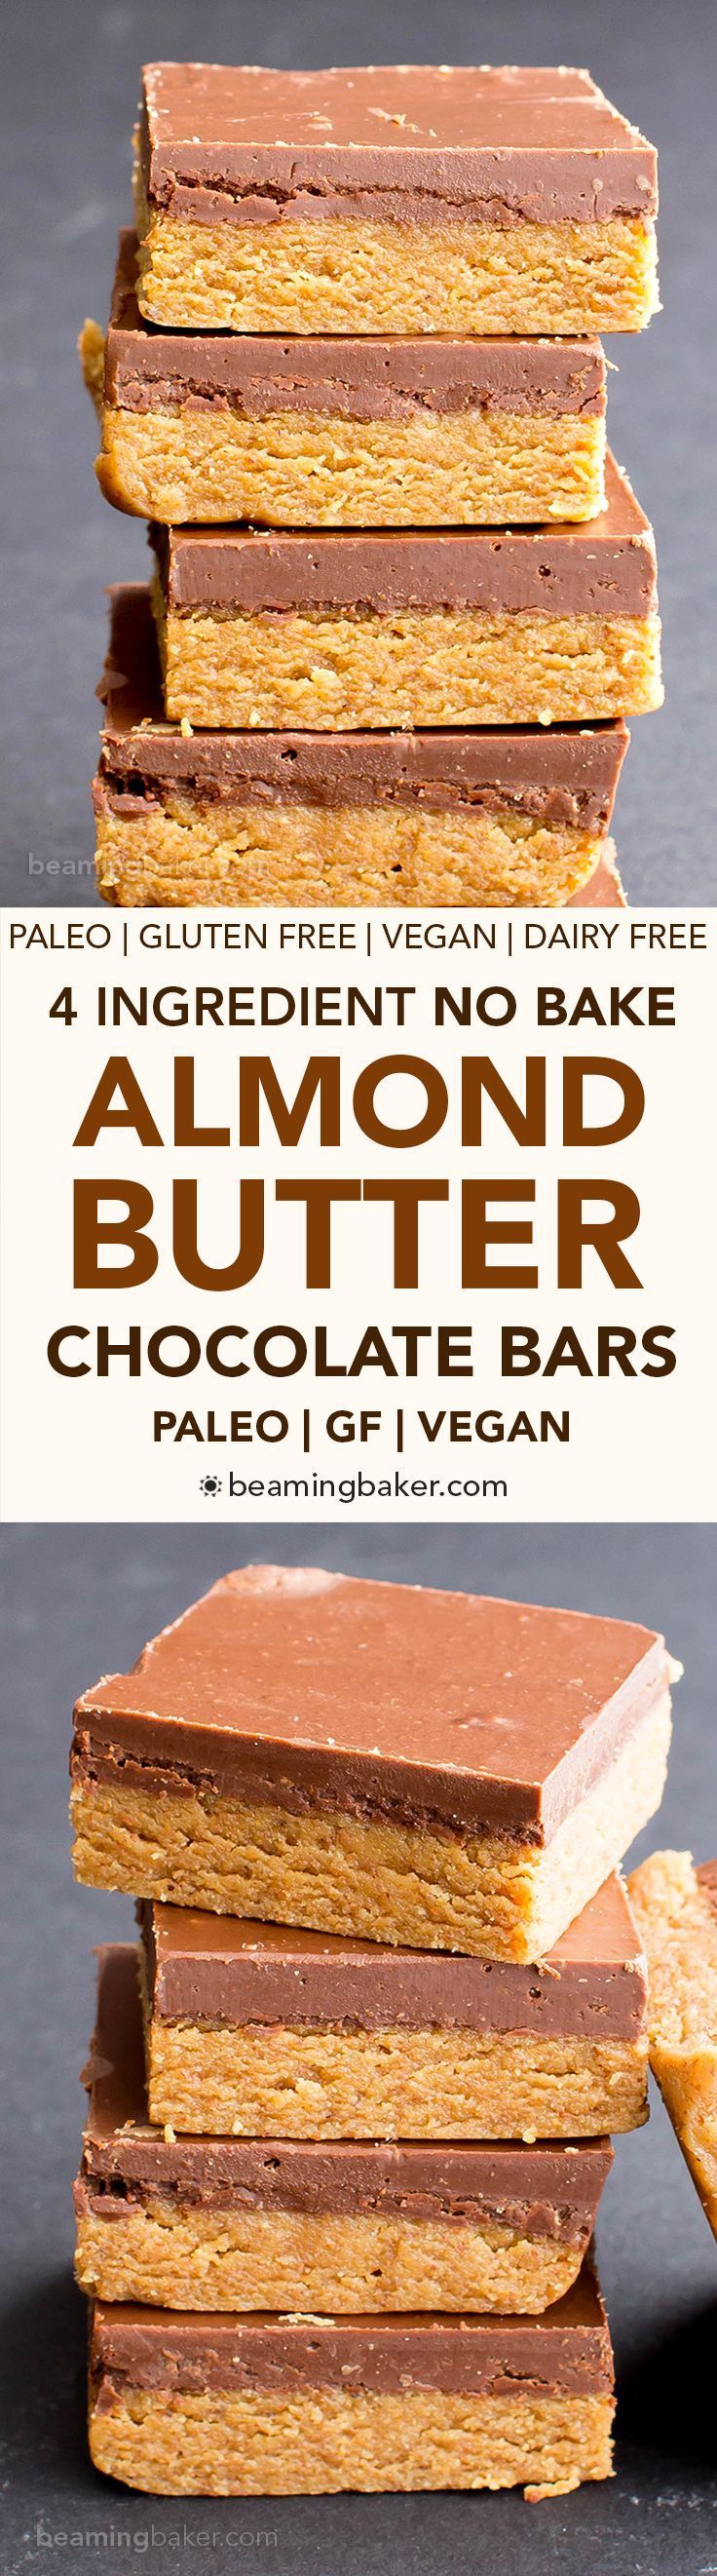 No Bake Paleo Chocolate Almond Butter Bars (V, GF, Paleo): a 4-ingredient no bake recipe for thick, decadent almond butter bars topped with chocolate.